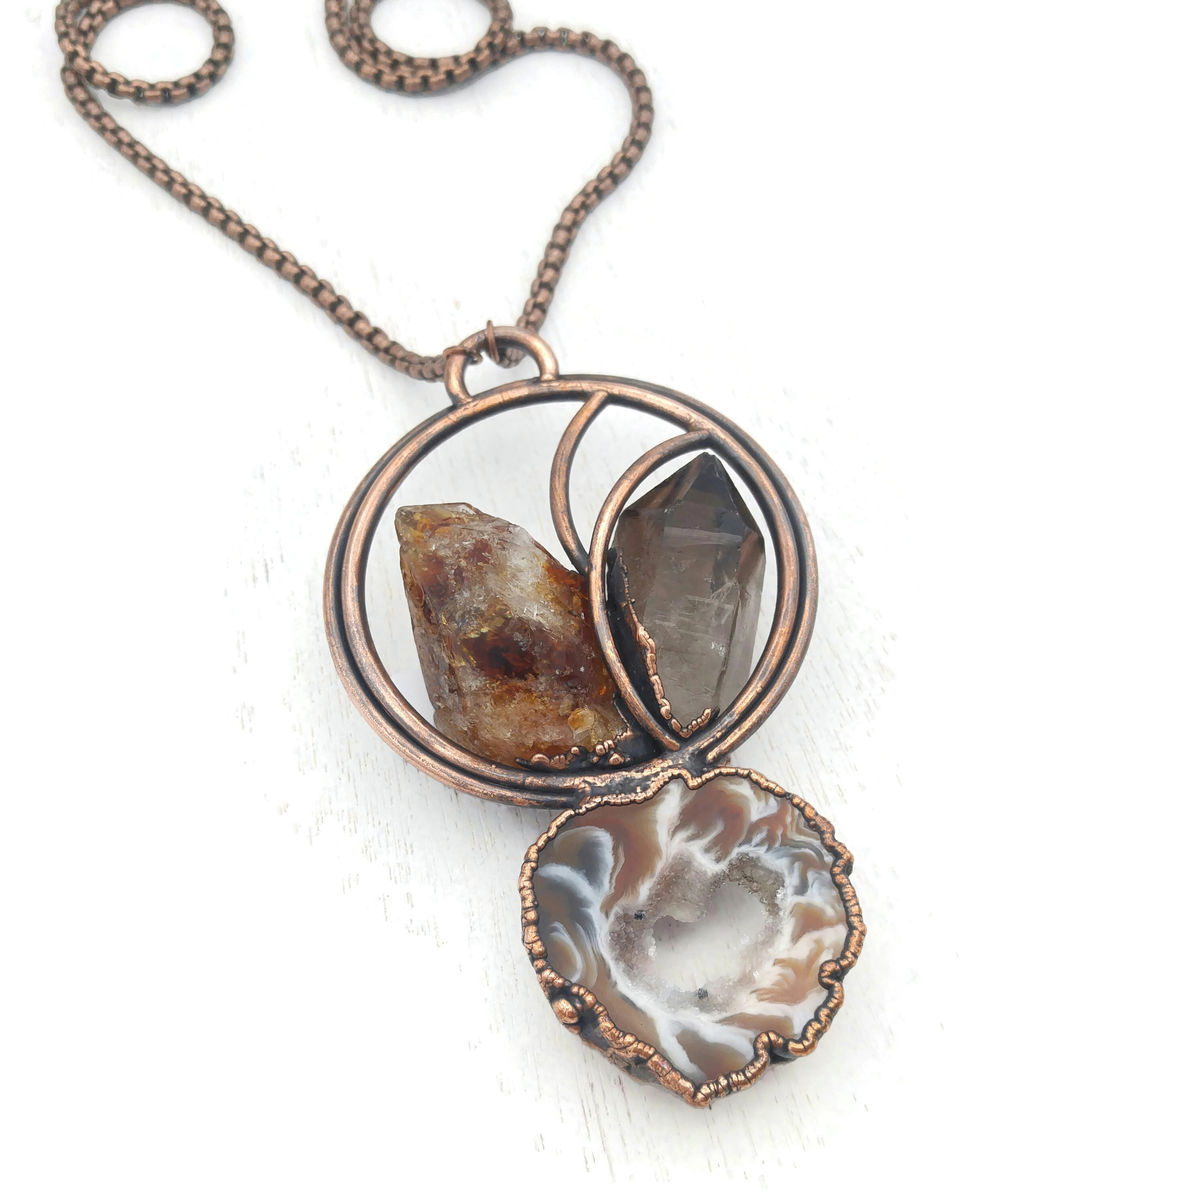 Smoky Citrine Geode Necklace - product images  of